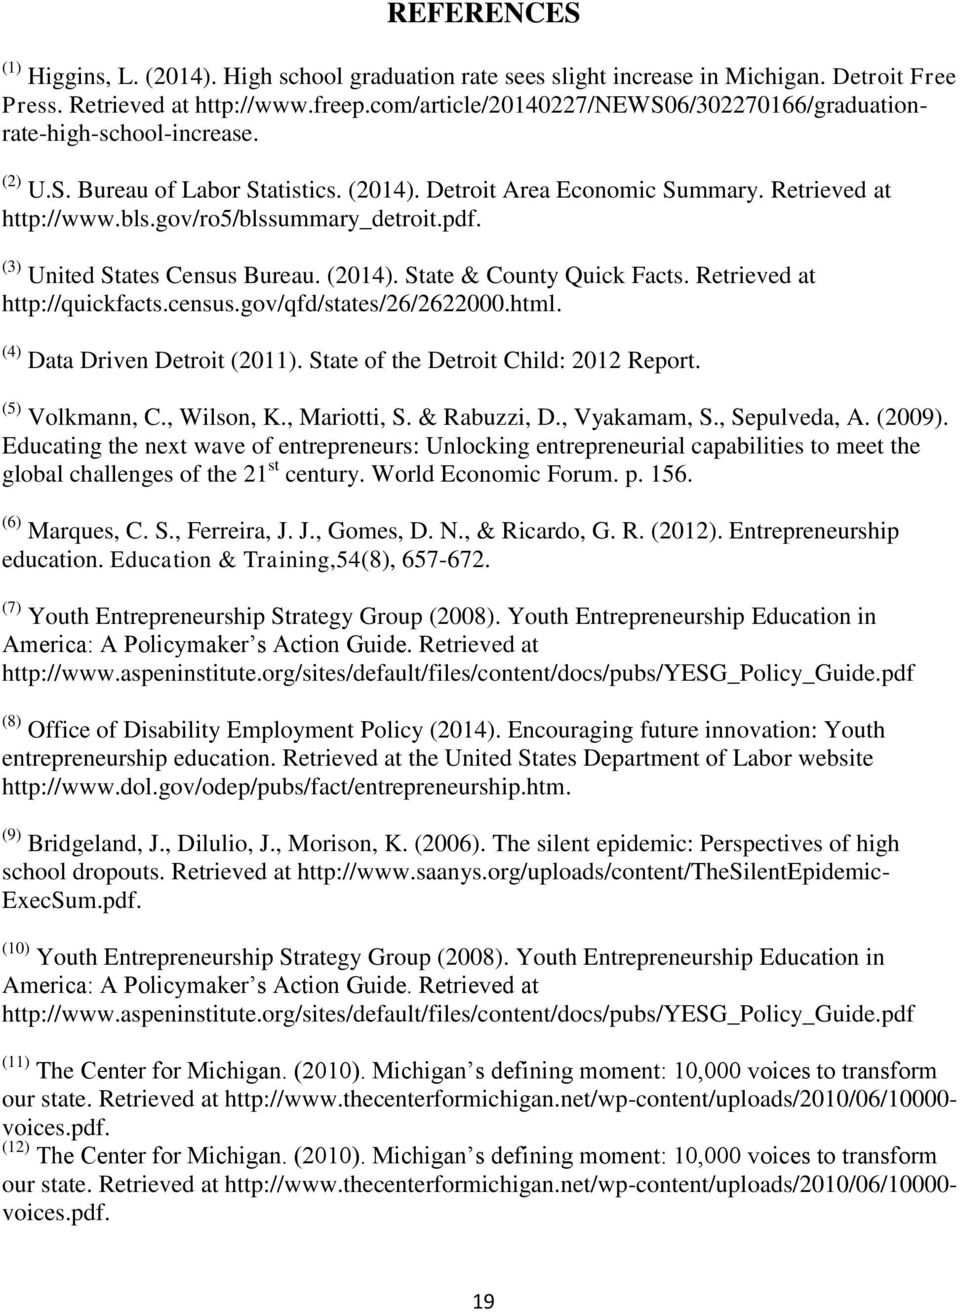 gov/ro5/blssummary_detroit.pdf. (3) United States Census Bureau. (2014). State & County Quick Facts. Retrieved at http://quickfacts.census.gov/qfd/states/26/2622000.html.